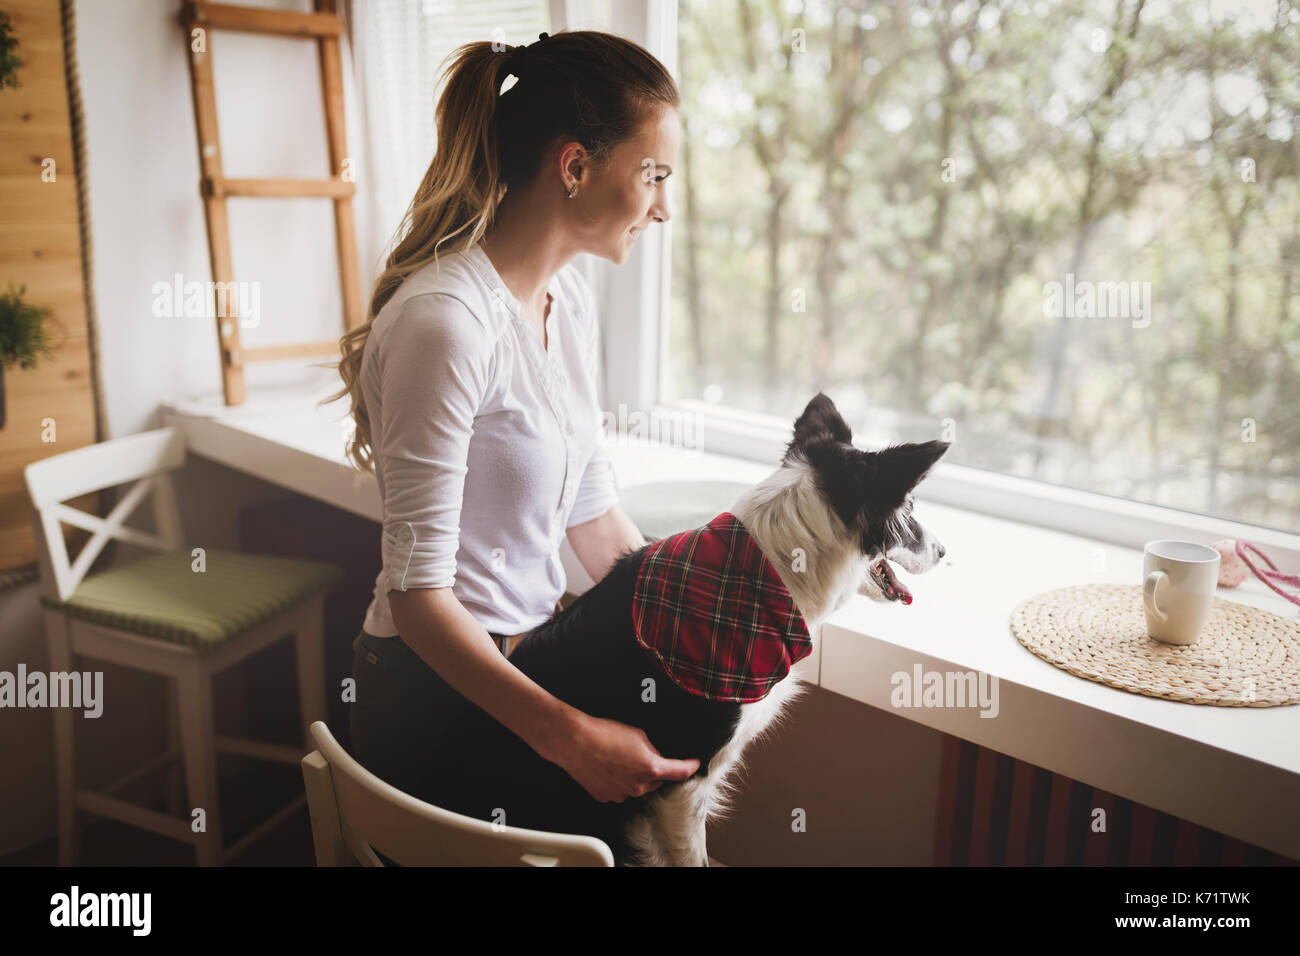 Beautiful woman happy while spending time with her dog at home - Stock Image